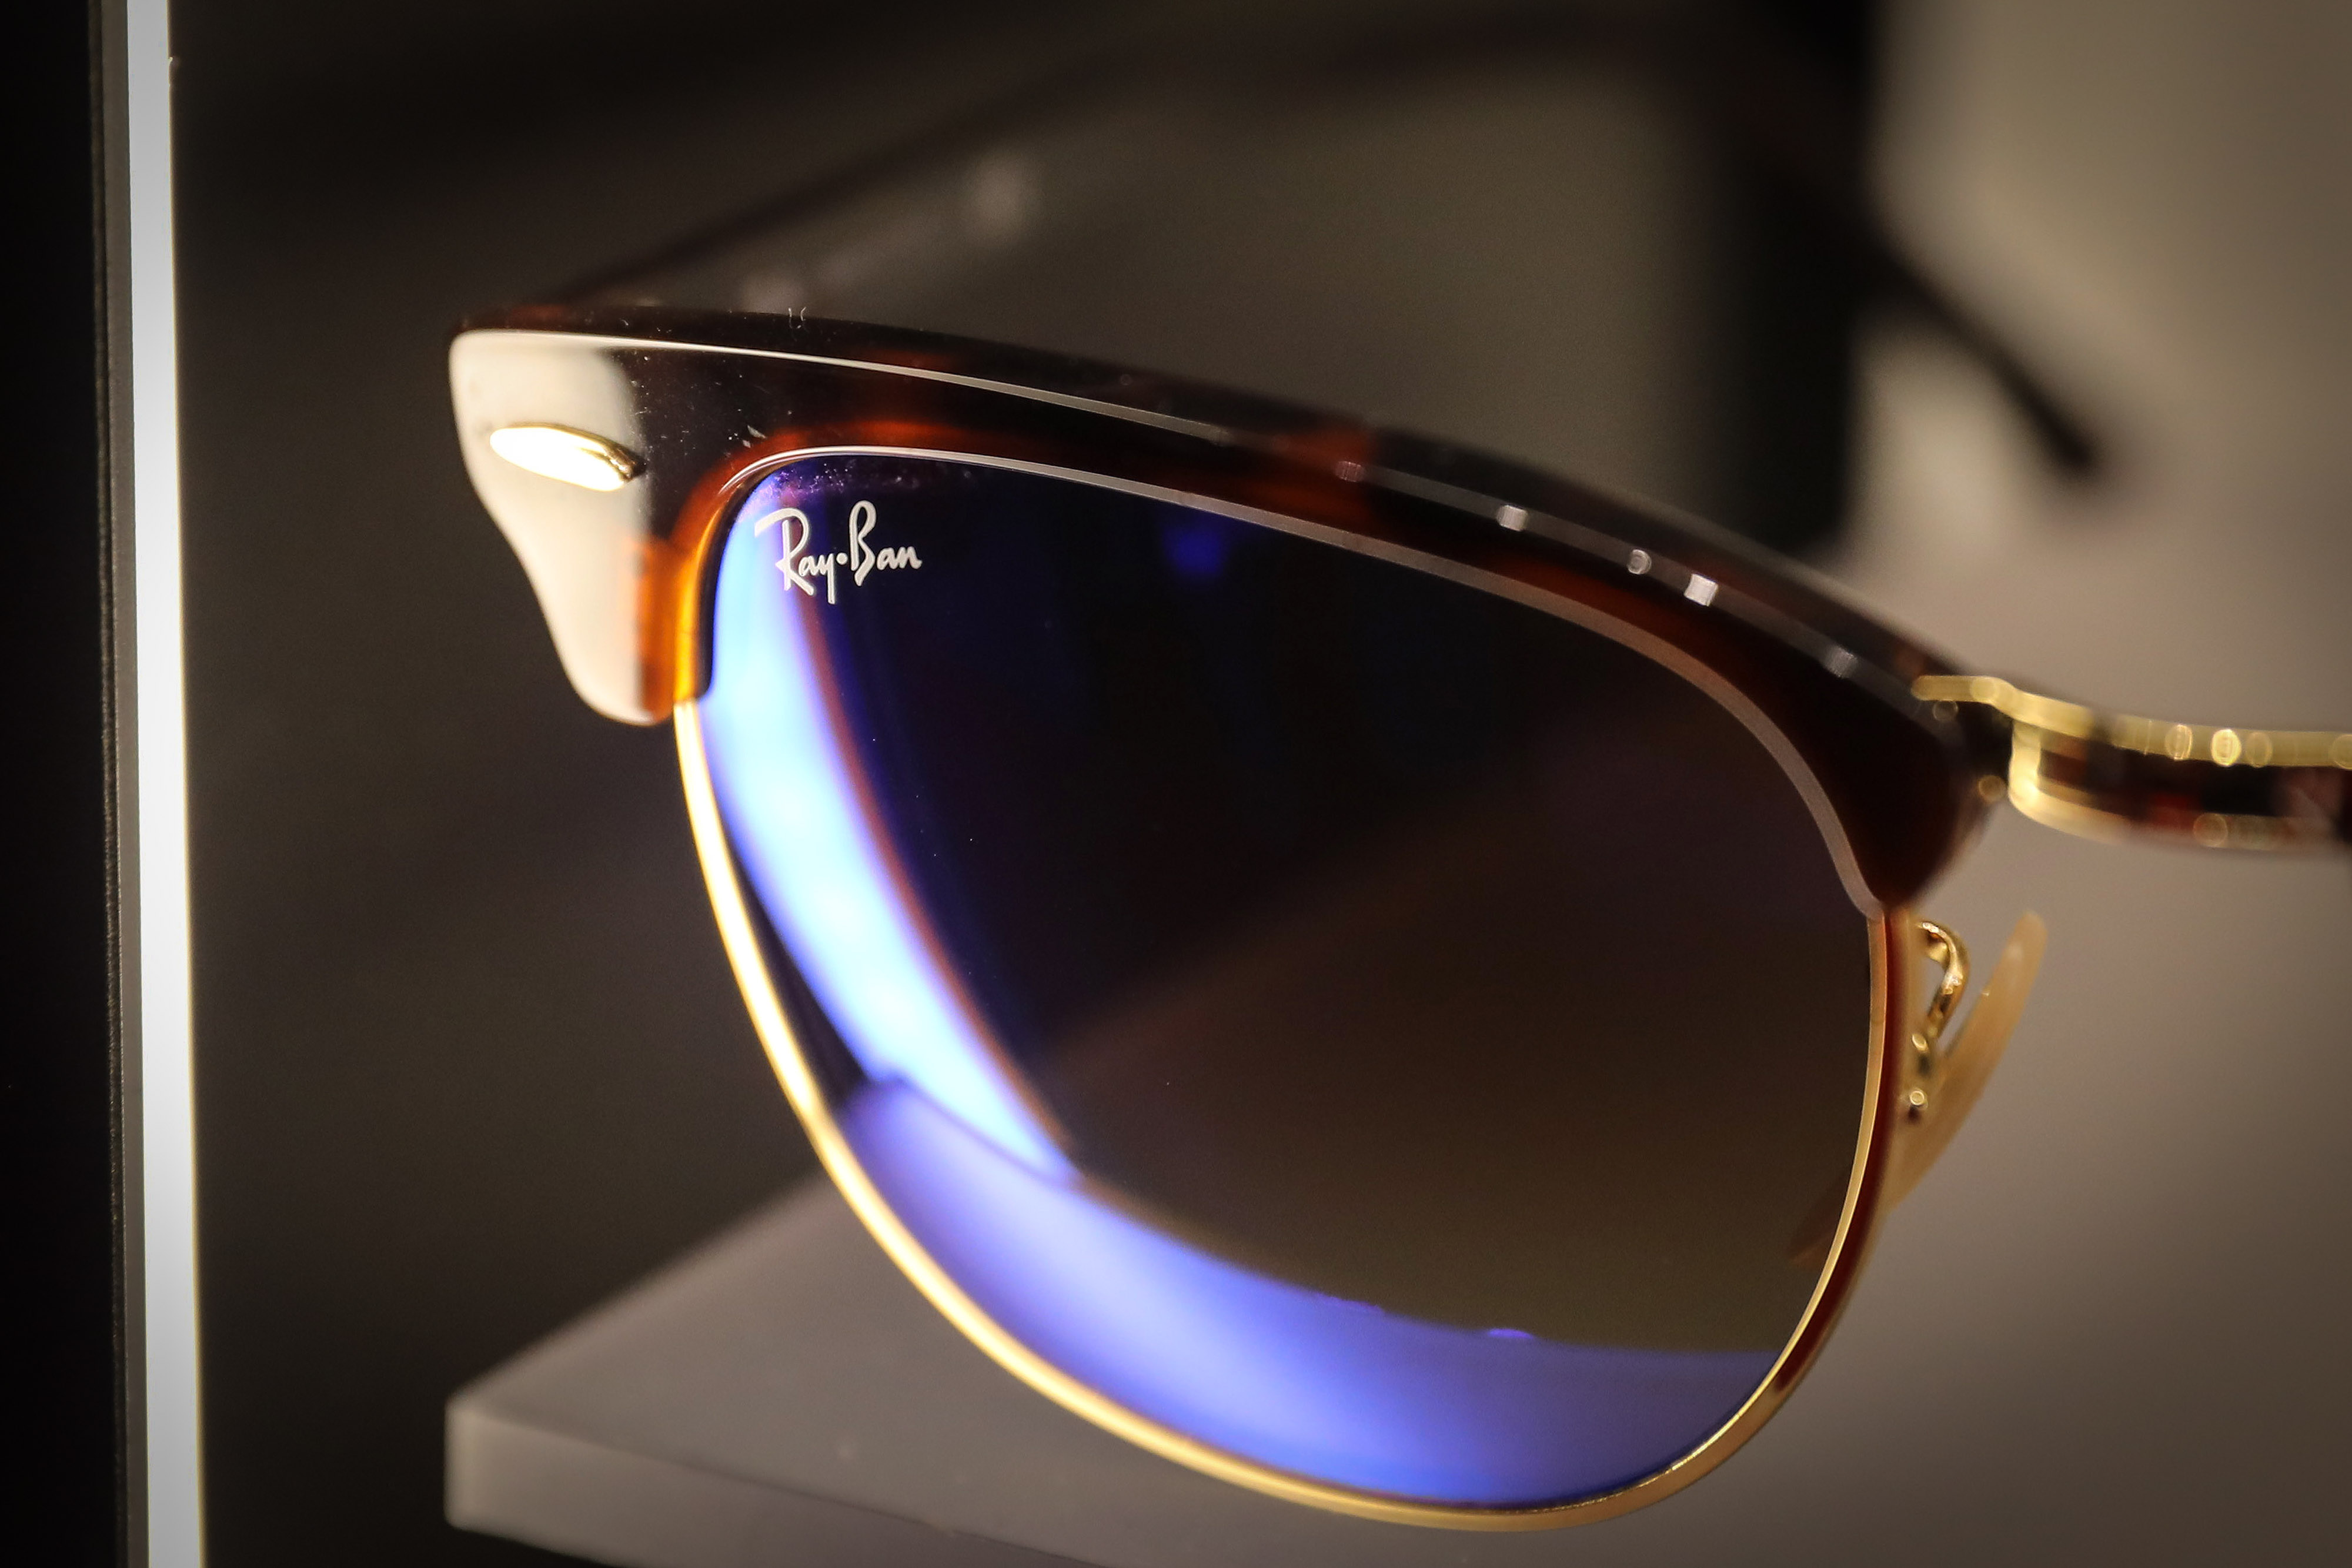 Ray-Ban Stores as EssilorLuxottica SA Commits to $8.7 Billion GrandVision Deal